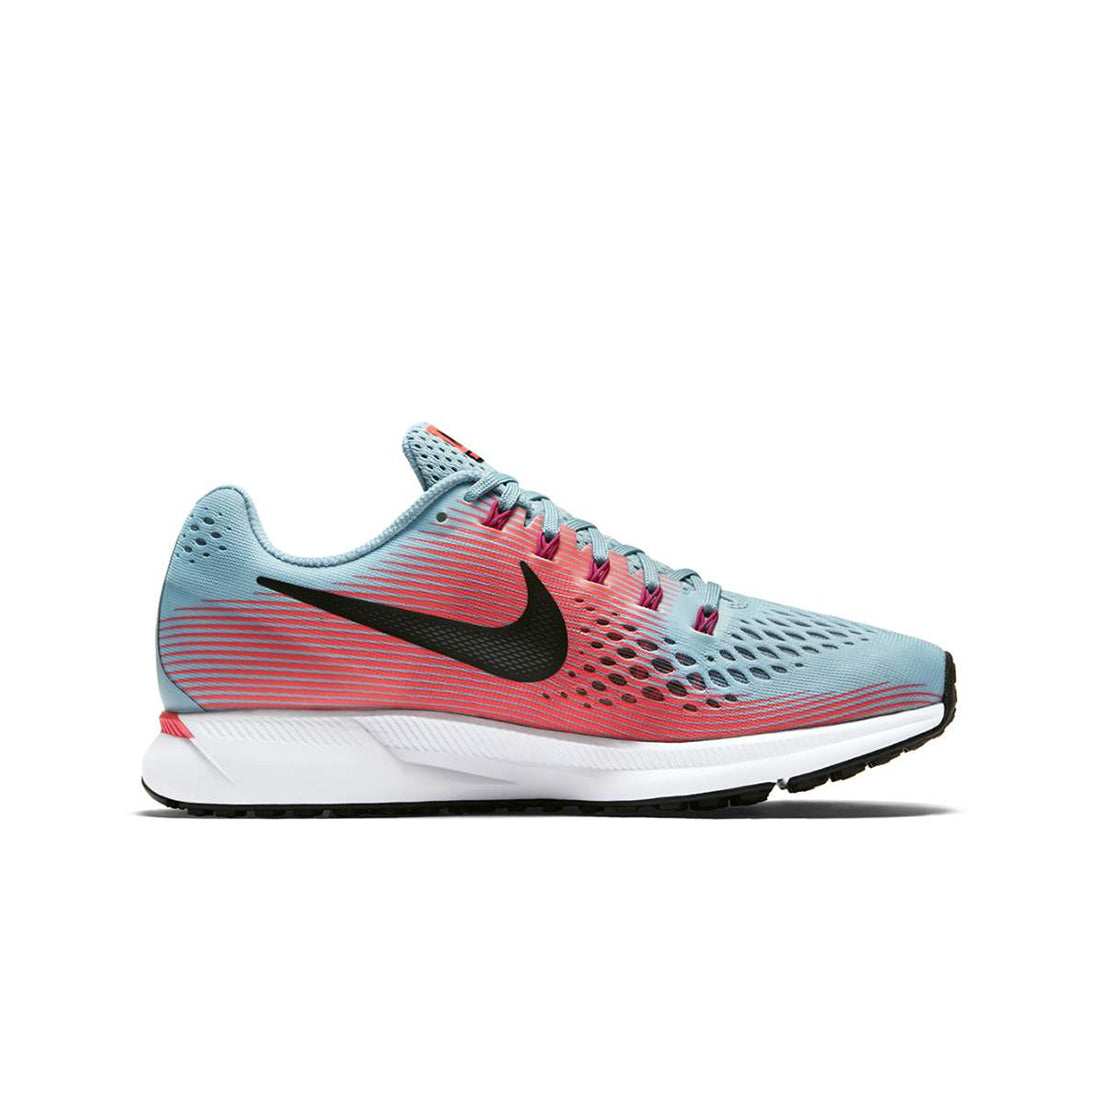 5c38ad237b1 Women s Air Pegasus 34 Running Shoe - Mica Blue White Racer Pink – Gazelle  Sports